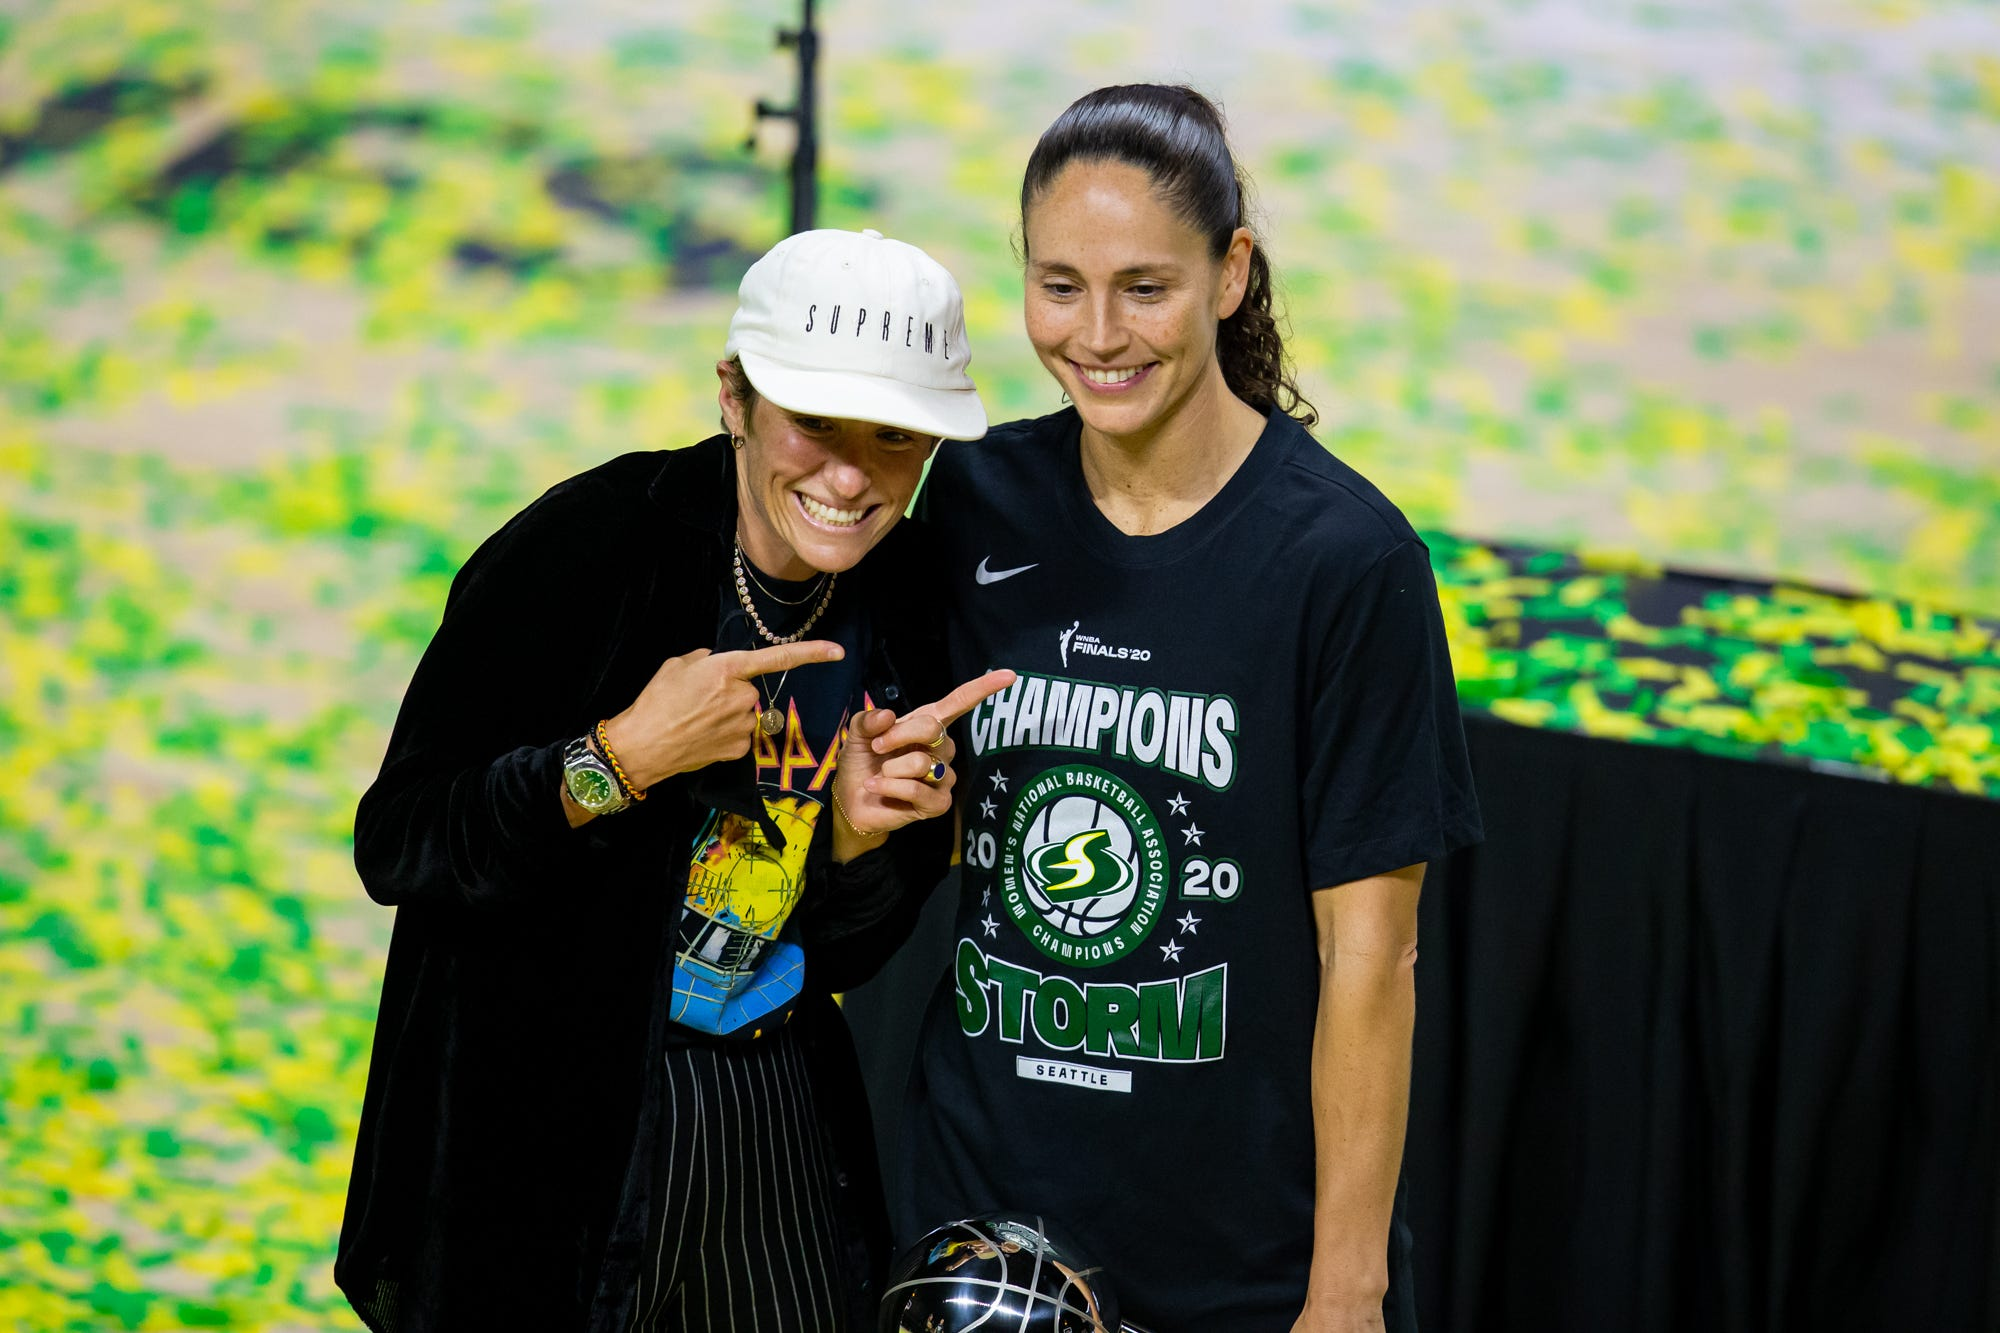 WNBA star Sue Bird, USWNT stalwart Megan Rapinoe announce their engagement